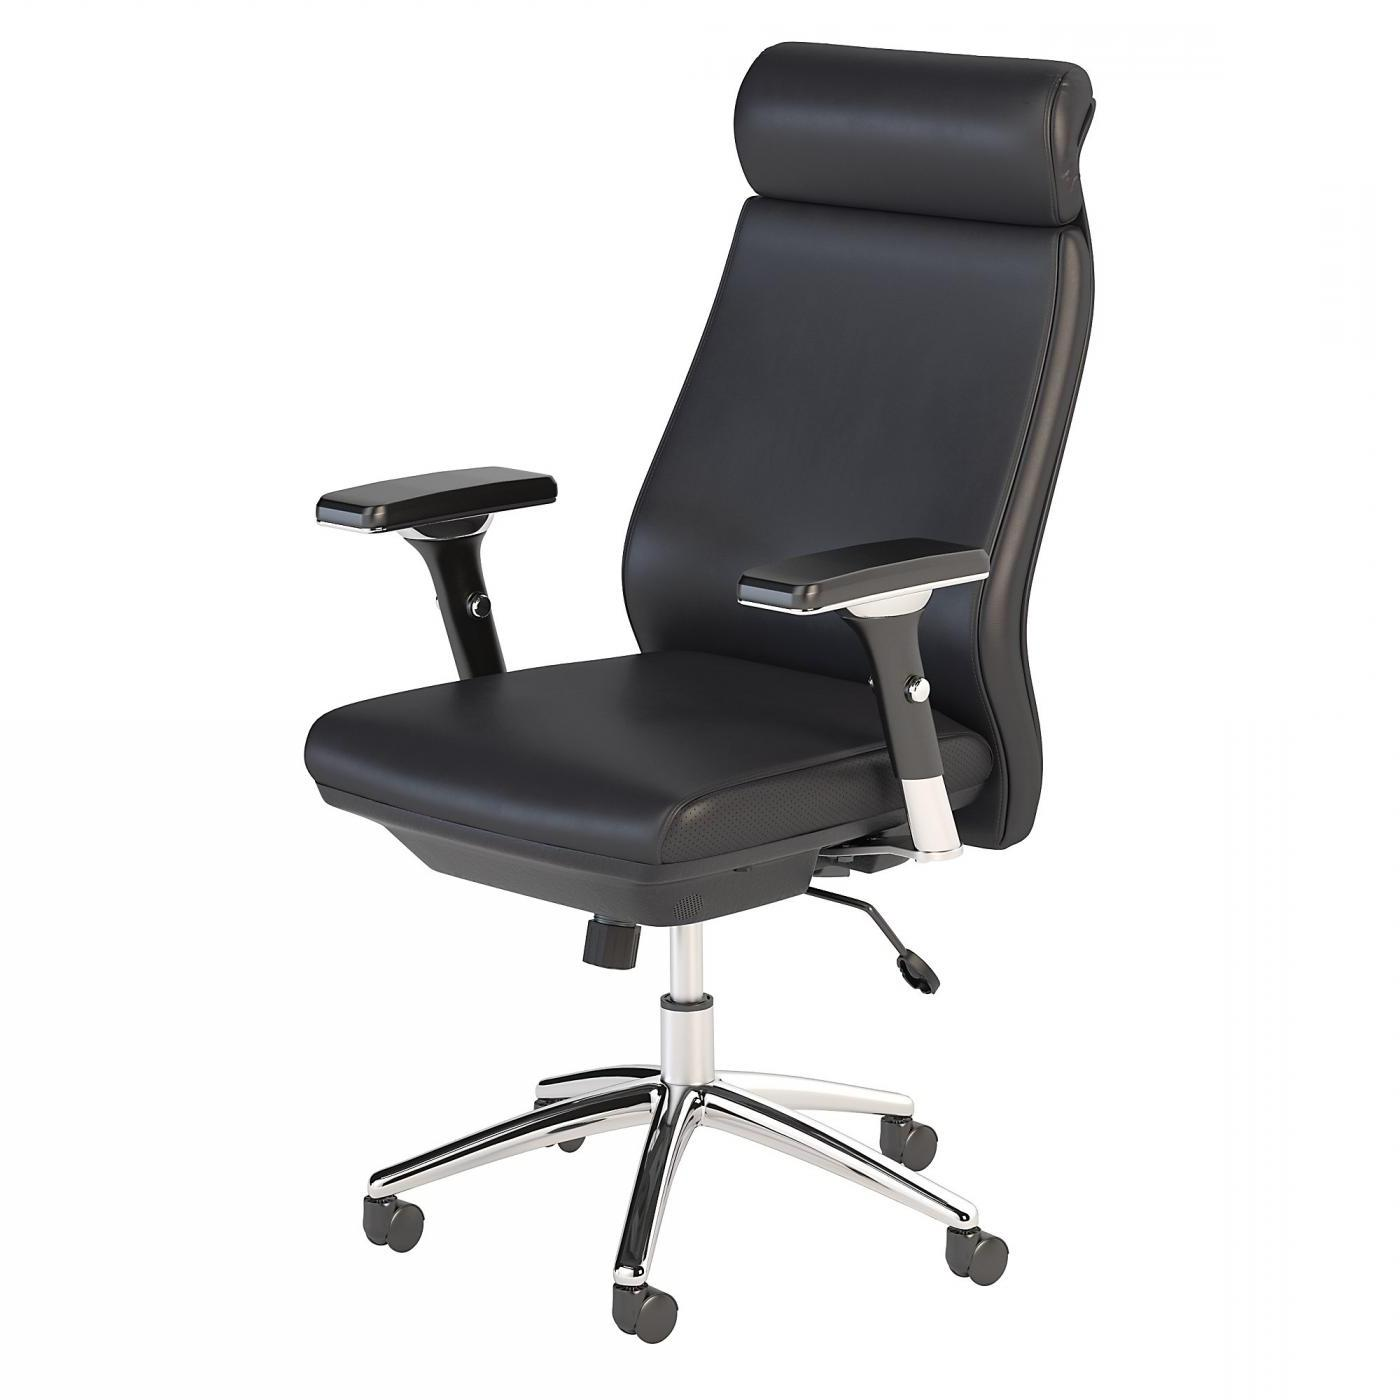 <font color=#c60><b>BUSH BUSINESS FURNITURE METROPOLIS HIGH BACK LEATHER EXECUTIVE OFFICE CHAIR. FREE SHIPPING</font></b> </font></b></font></b>